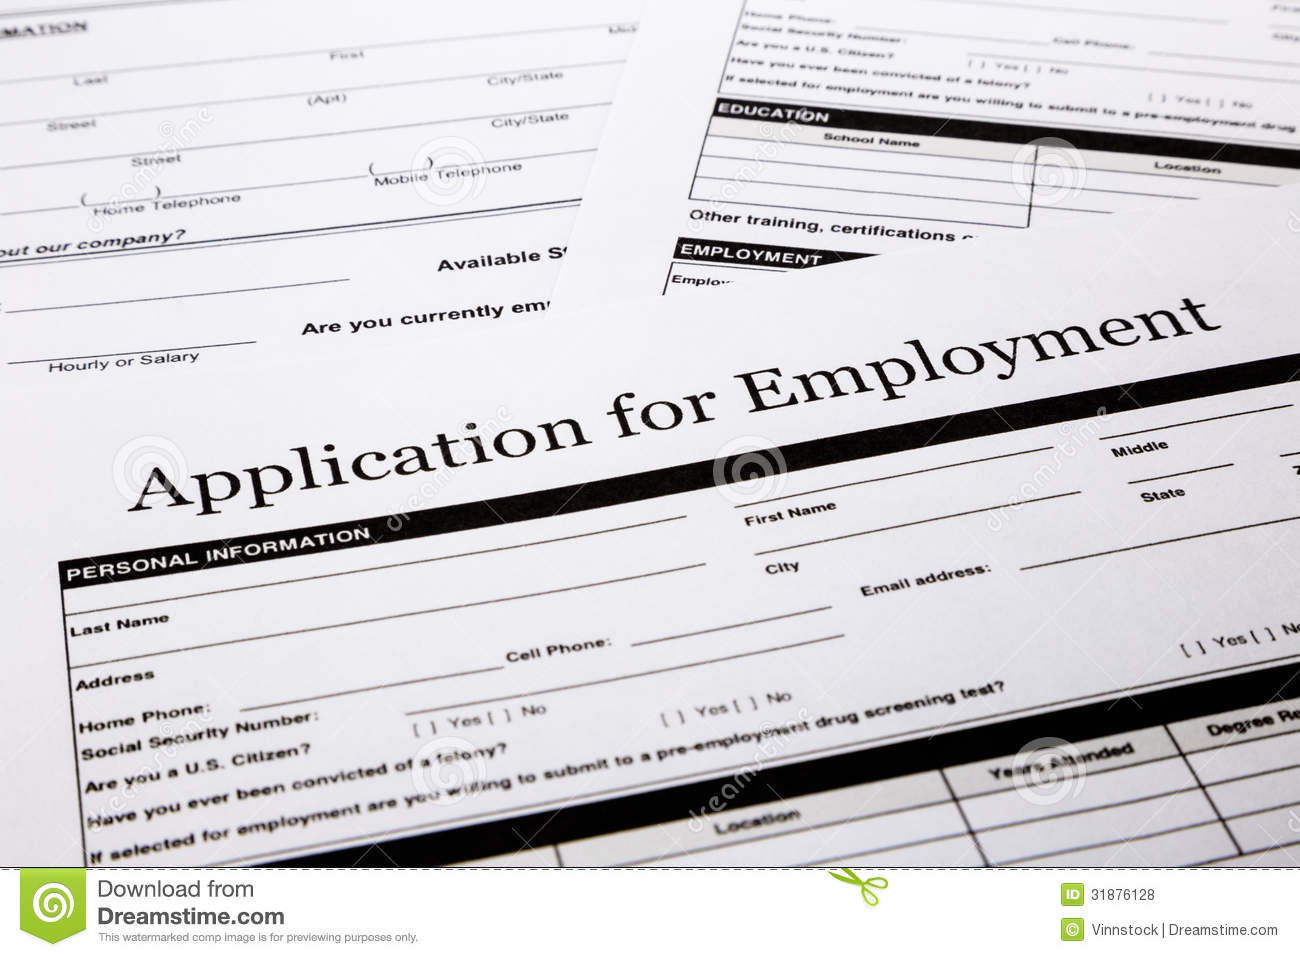 Employment application form, human resources and business concepts.